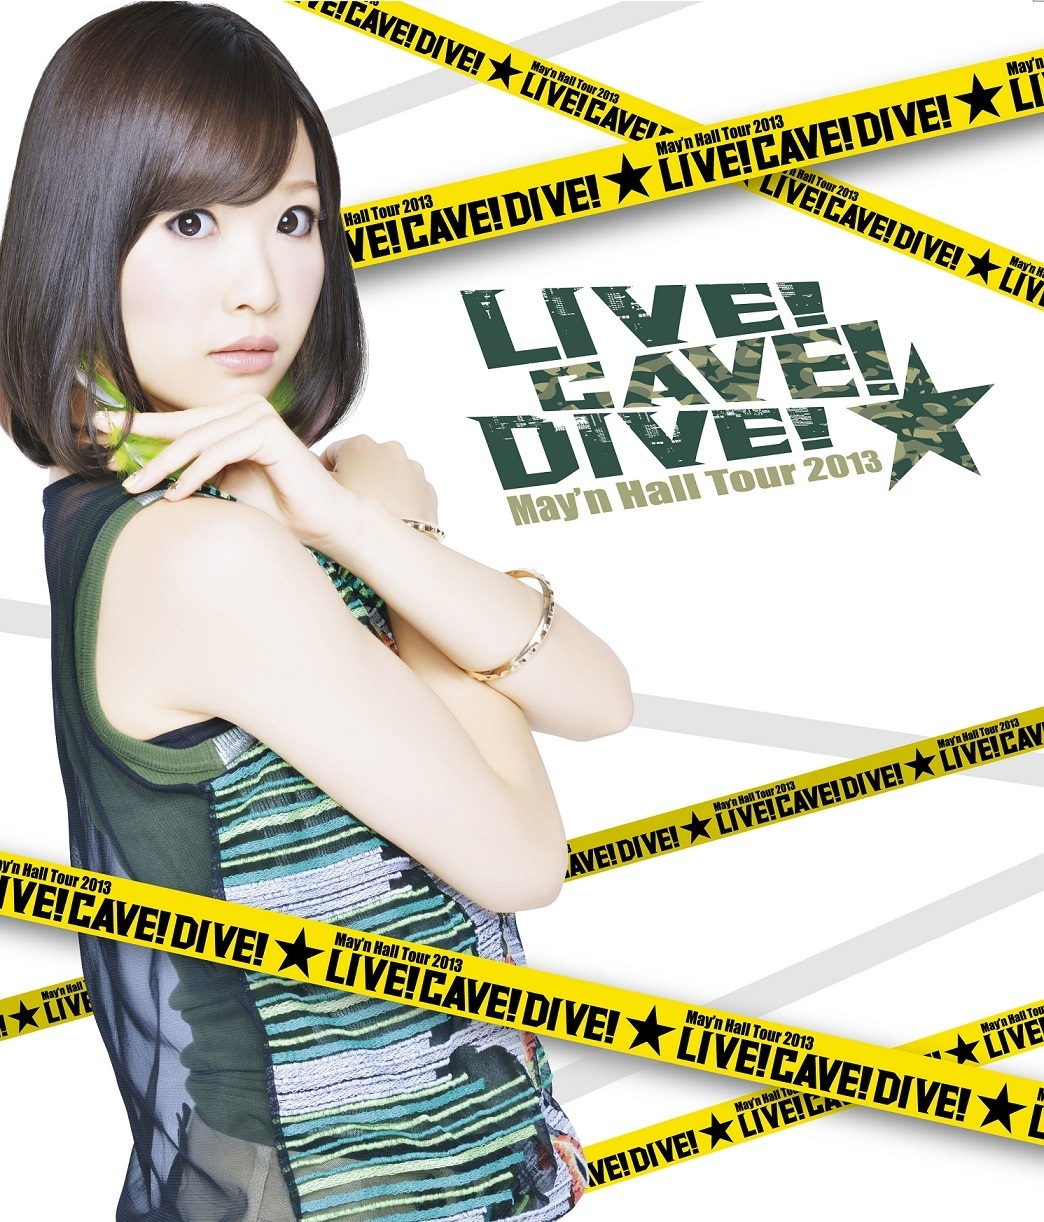 "May'n Hall Tour 2013 ""LIVE! CAVE! DIVE!""パンフレット"